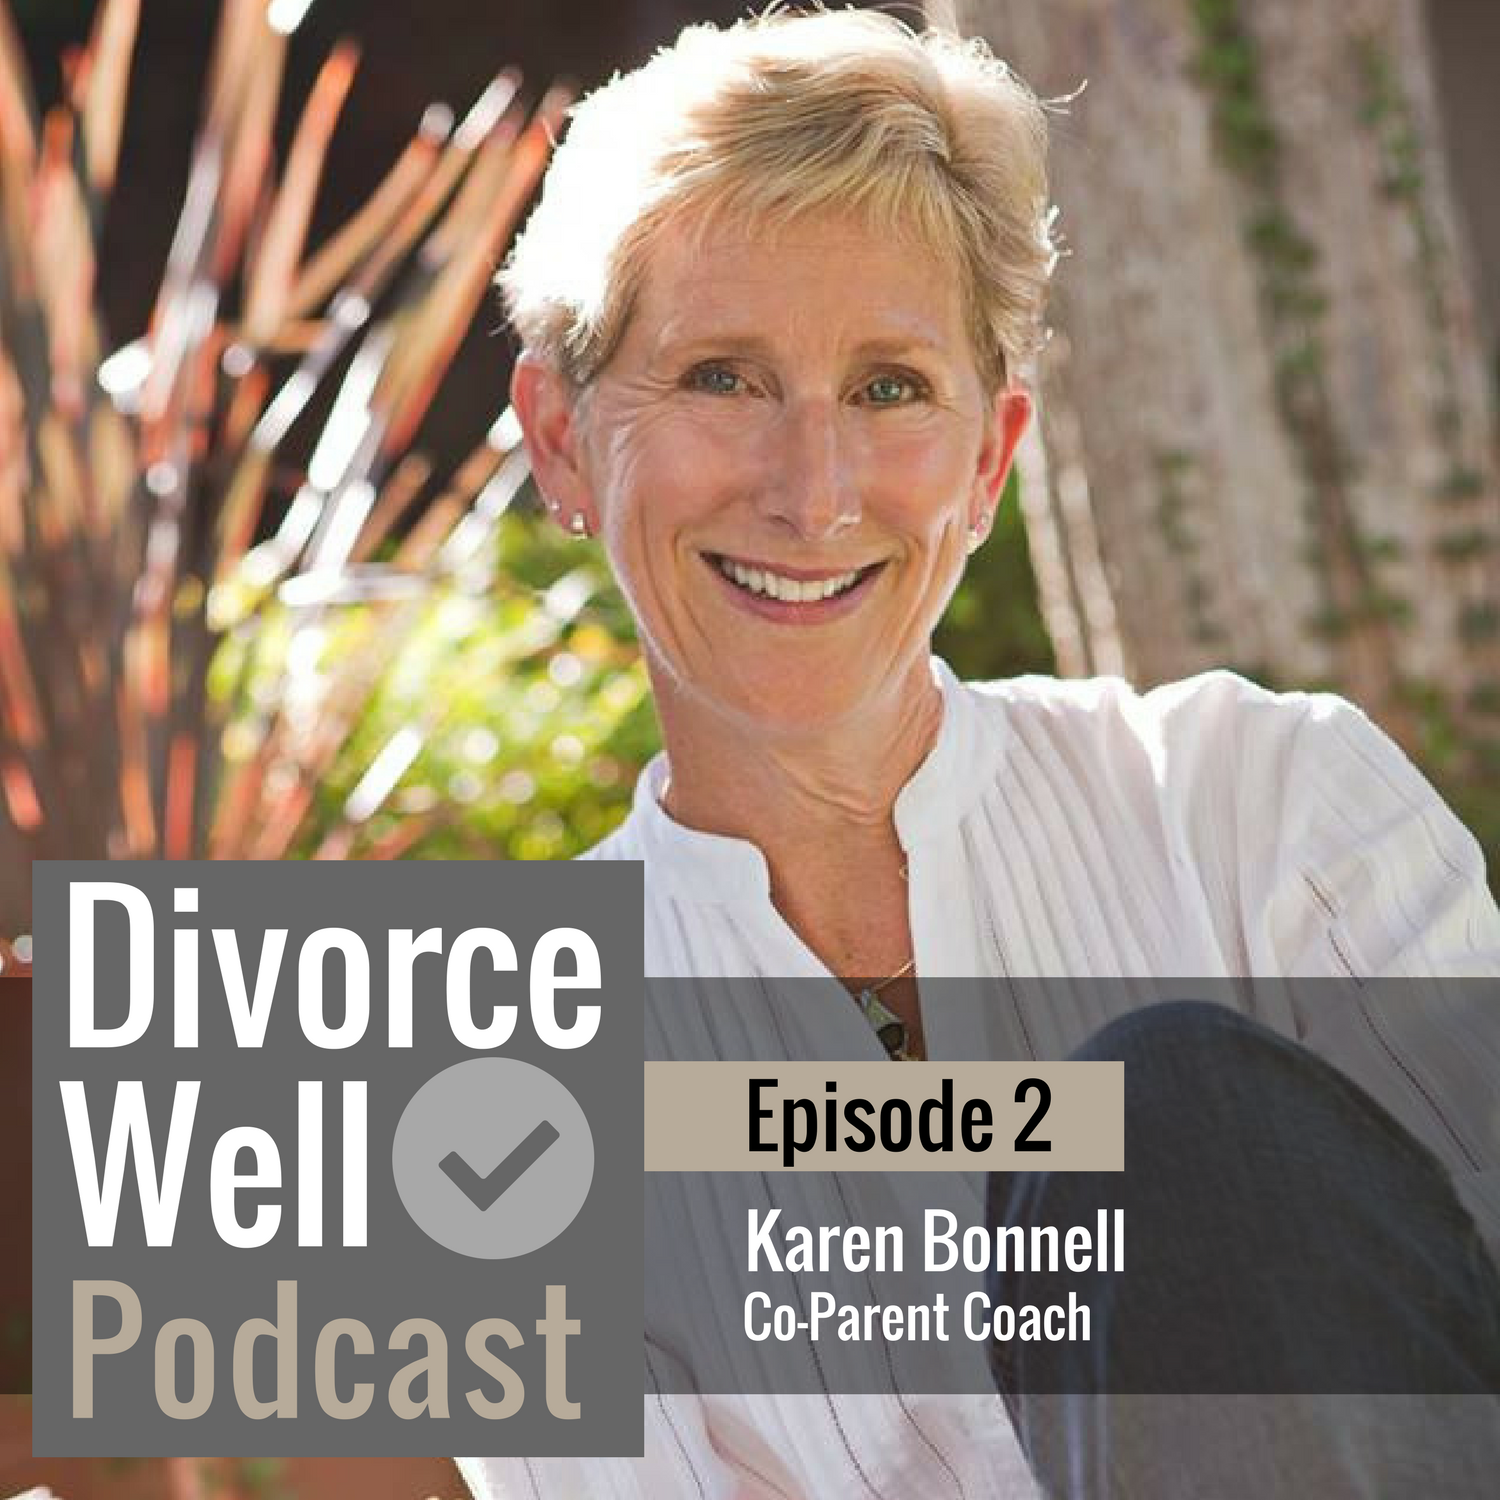 The Divorce Well Podcast - 02 - Co-Parenting Strategies to Help Your Kids Thrive, with Karen Bonnell